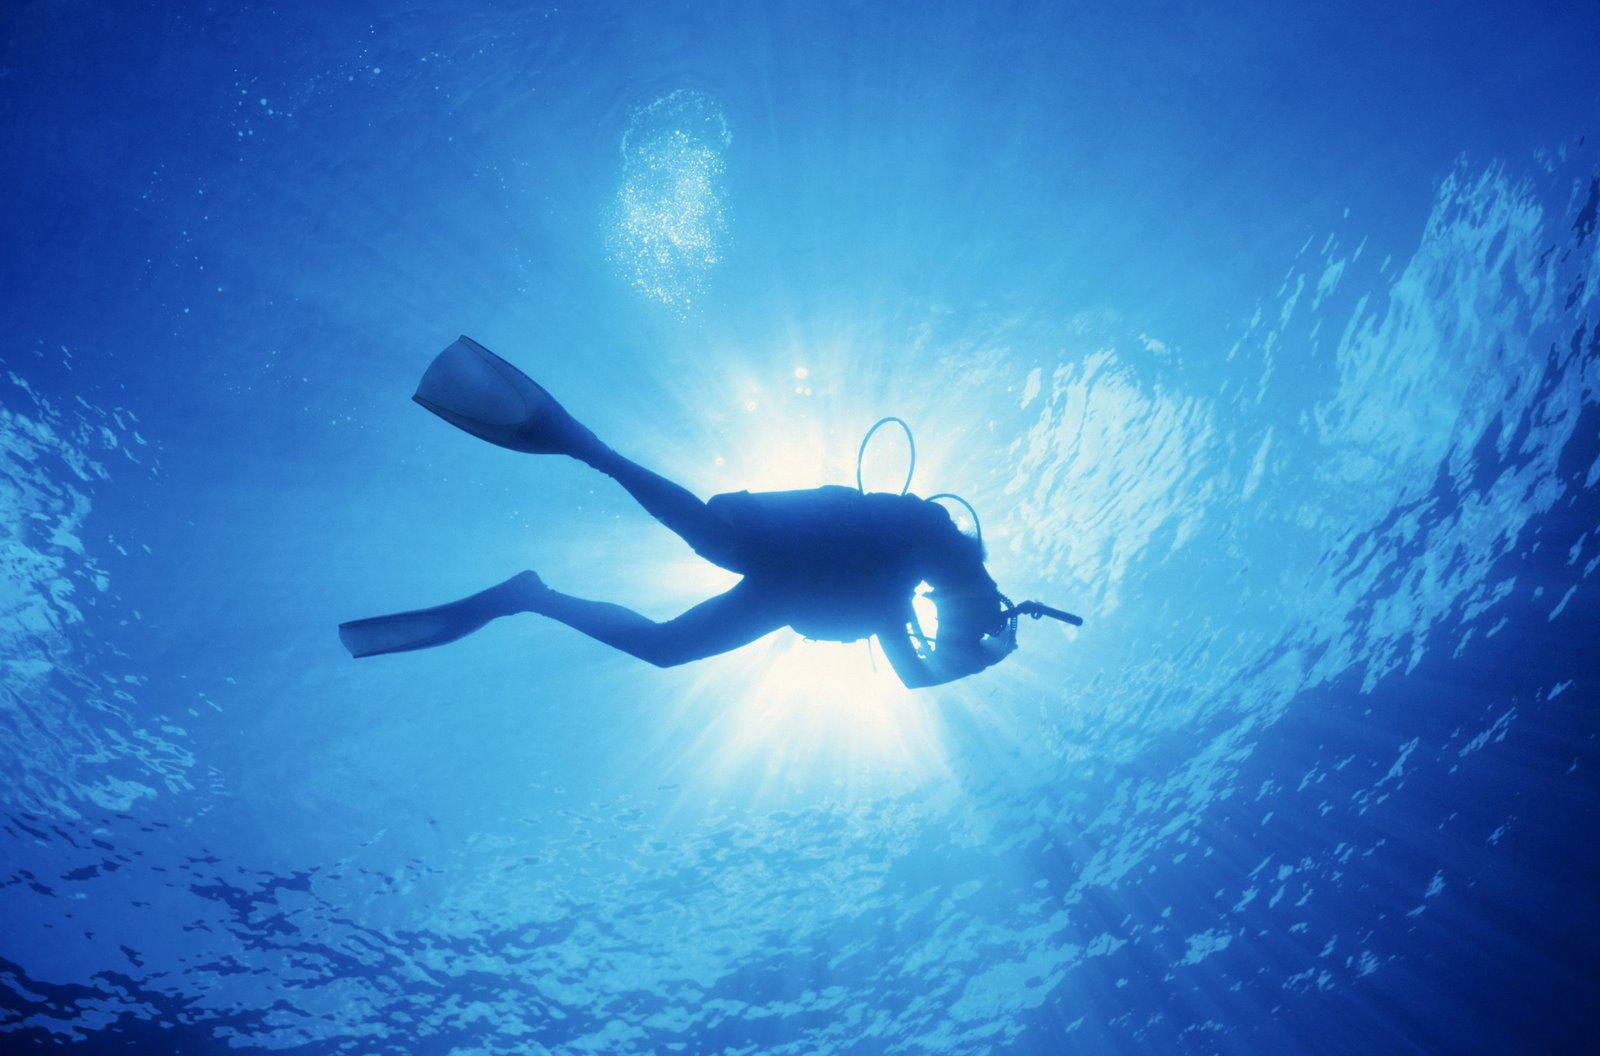 Displaying 9 Images For   Scuba Diving Wallpaper High Resolution 1600x1056